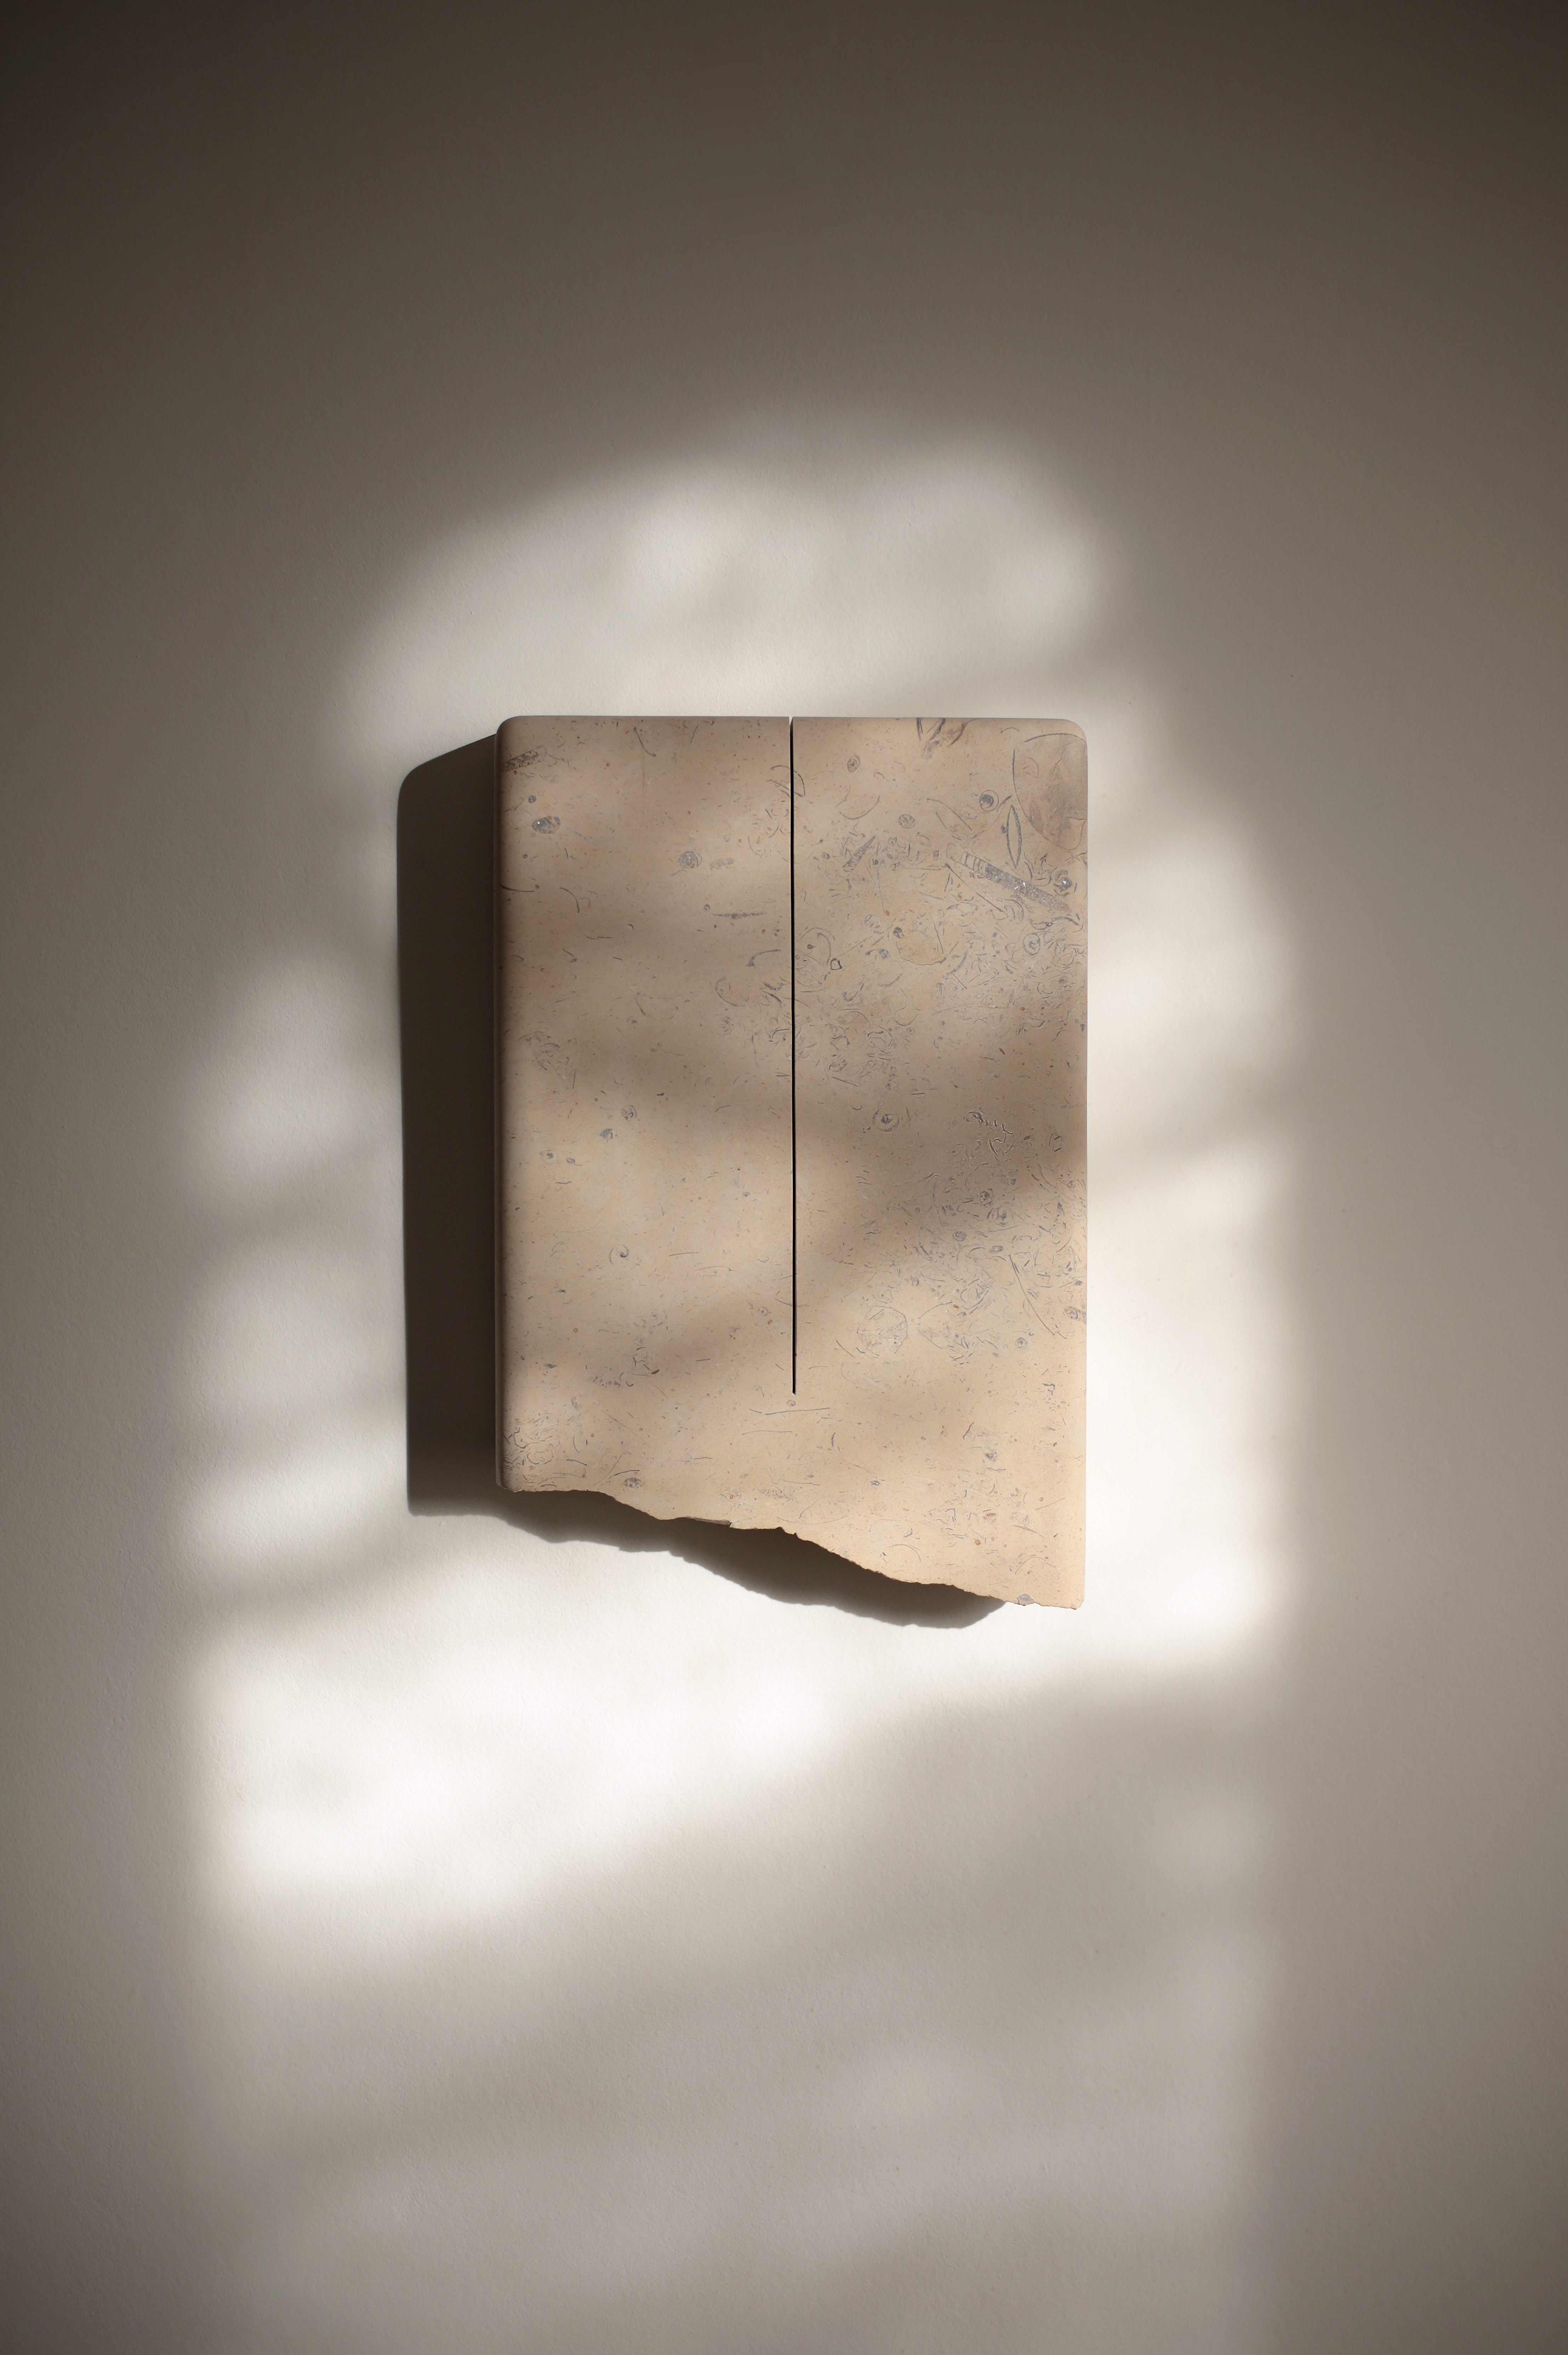 A PURE UNTROUBLED LINE III (after Iris Murdoch) 2019, Lincolnshire limestone – silver bed, 33.5 x 22.4 x 5.0 cm